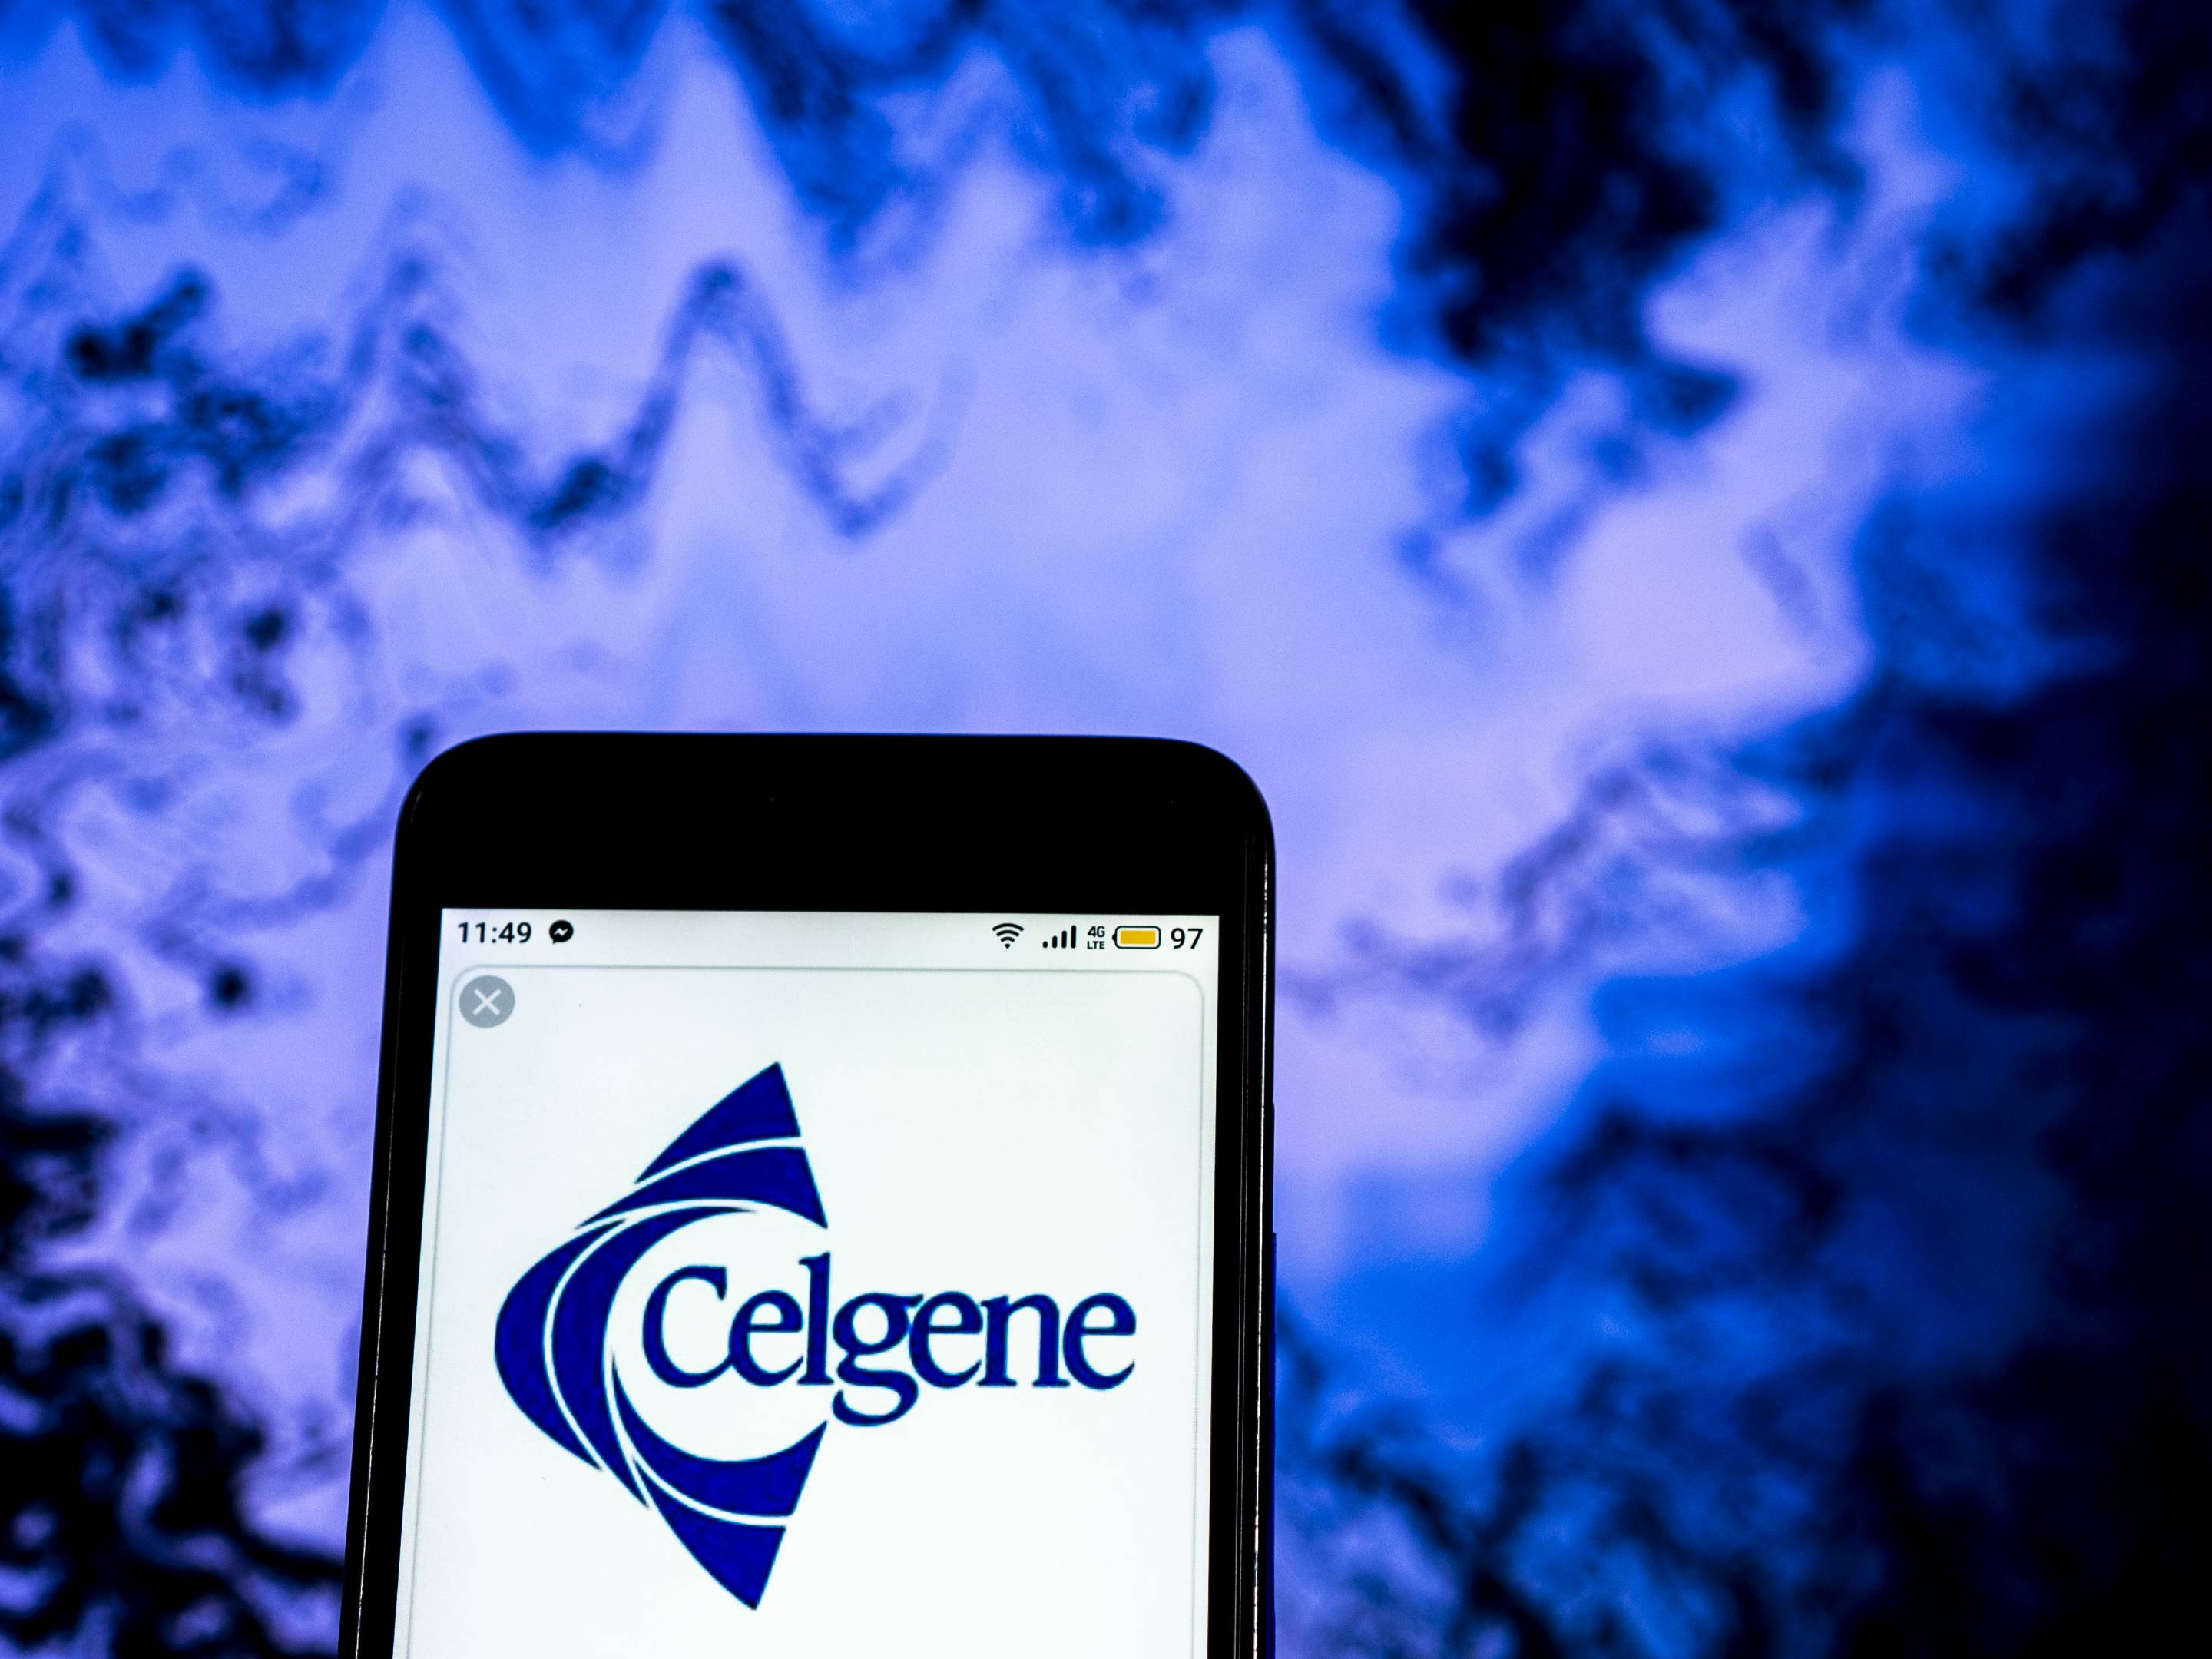 Celgene Biotechnology company  logo seen displayed on a